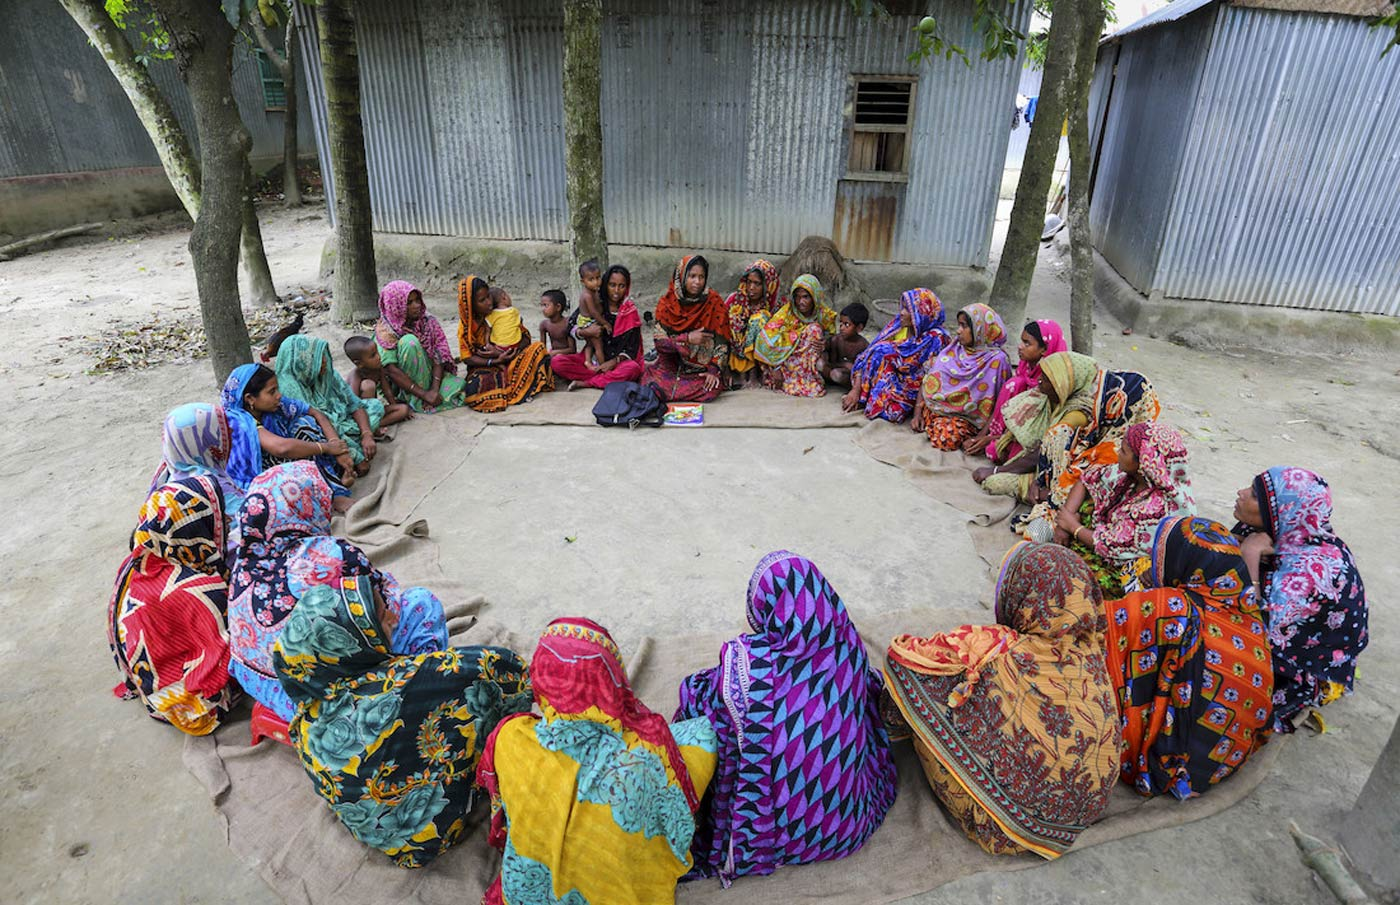 Health worker and pregnant women sitting in a circle in Bangladesh. Credit: Gavi/2014/GMB Akash.